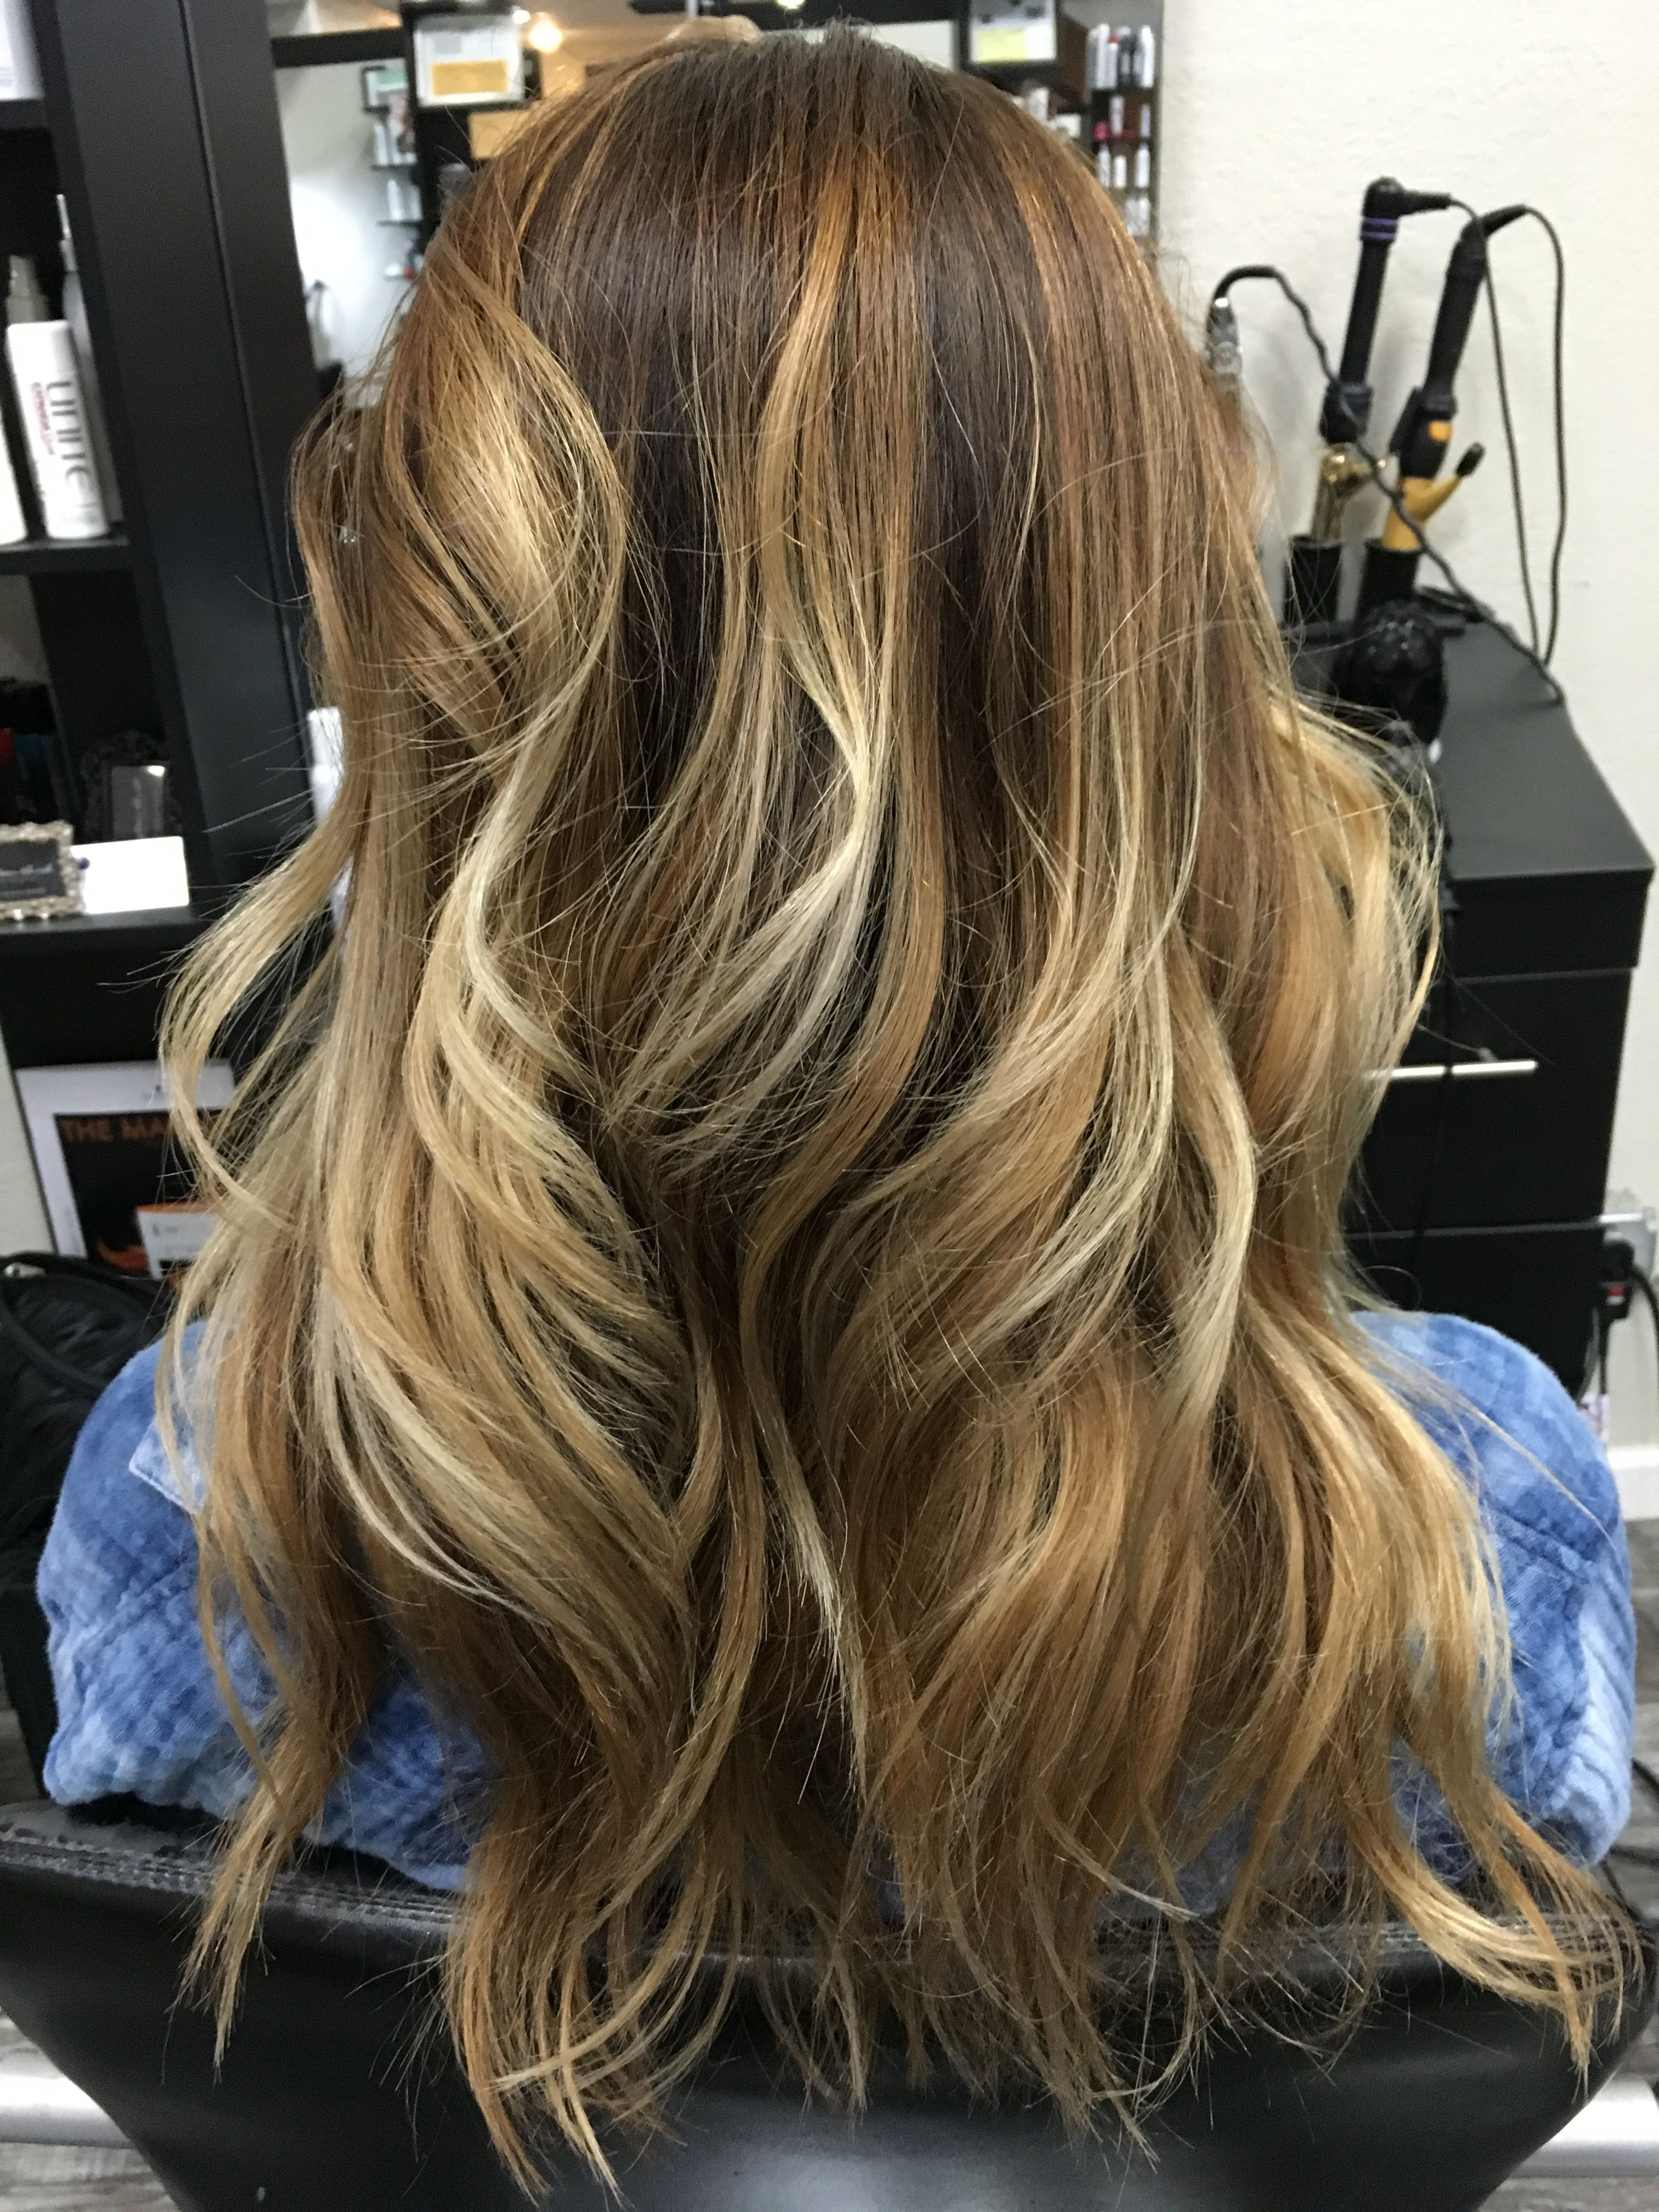 Balayage Hair Blonde Highlights Ombr Hair Babylights Hair